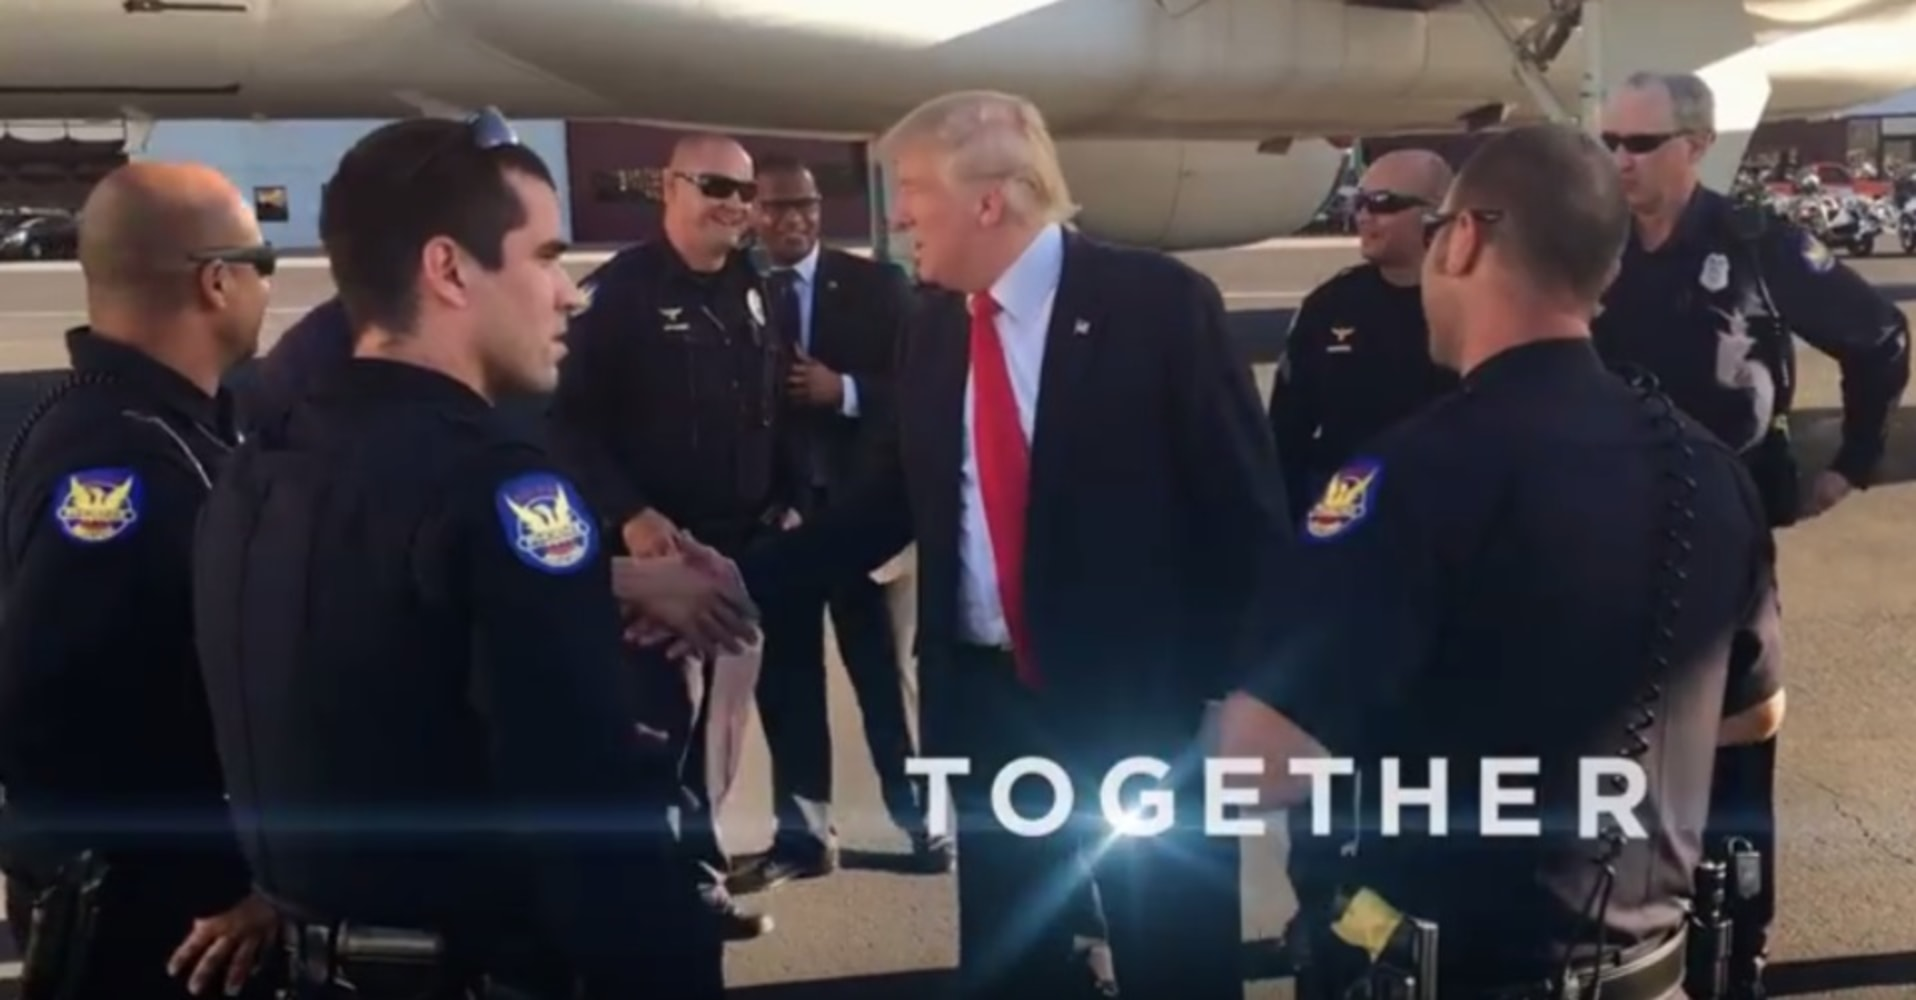 Phoenix tells Trump campaign to stop using city police in ad